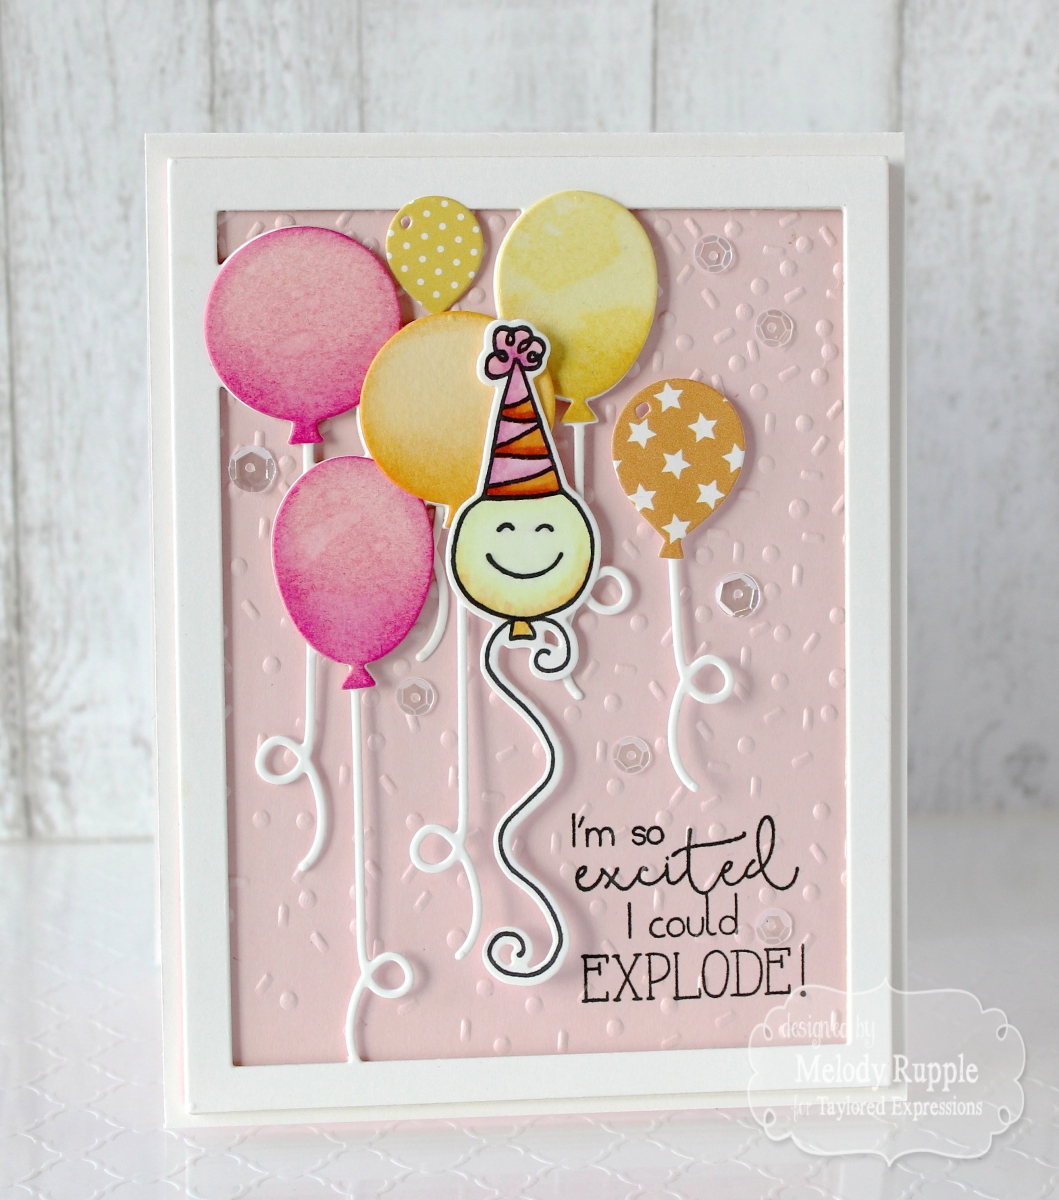 I Started By Creating The Frame With Up Away Cutting Plate This Cuts And Includes Balloon Dies So You Can Use To Add